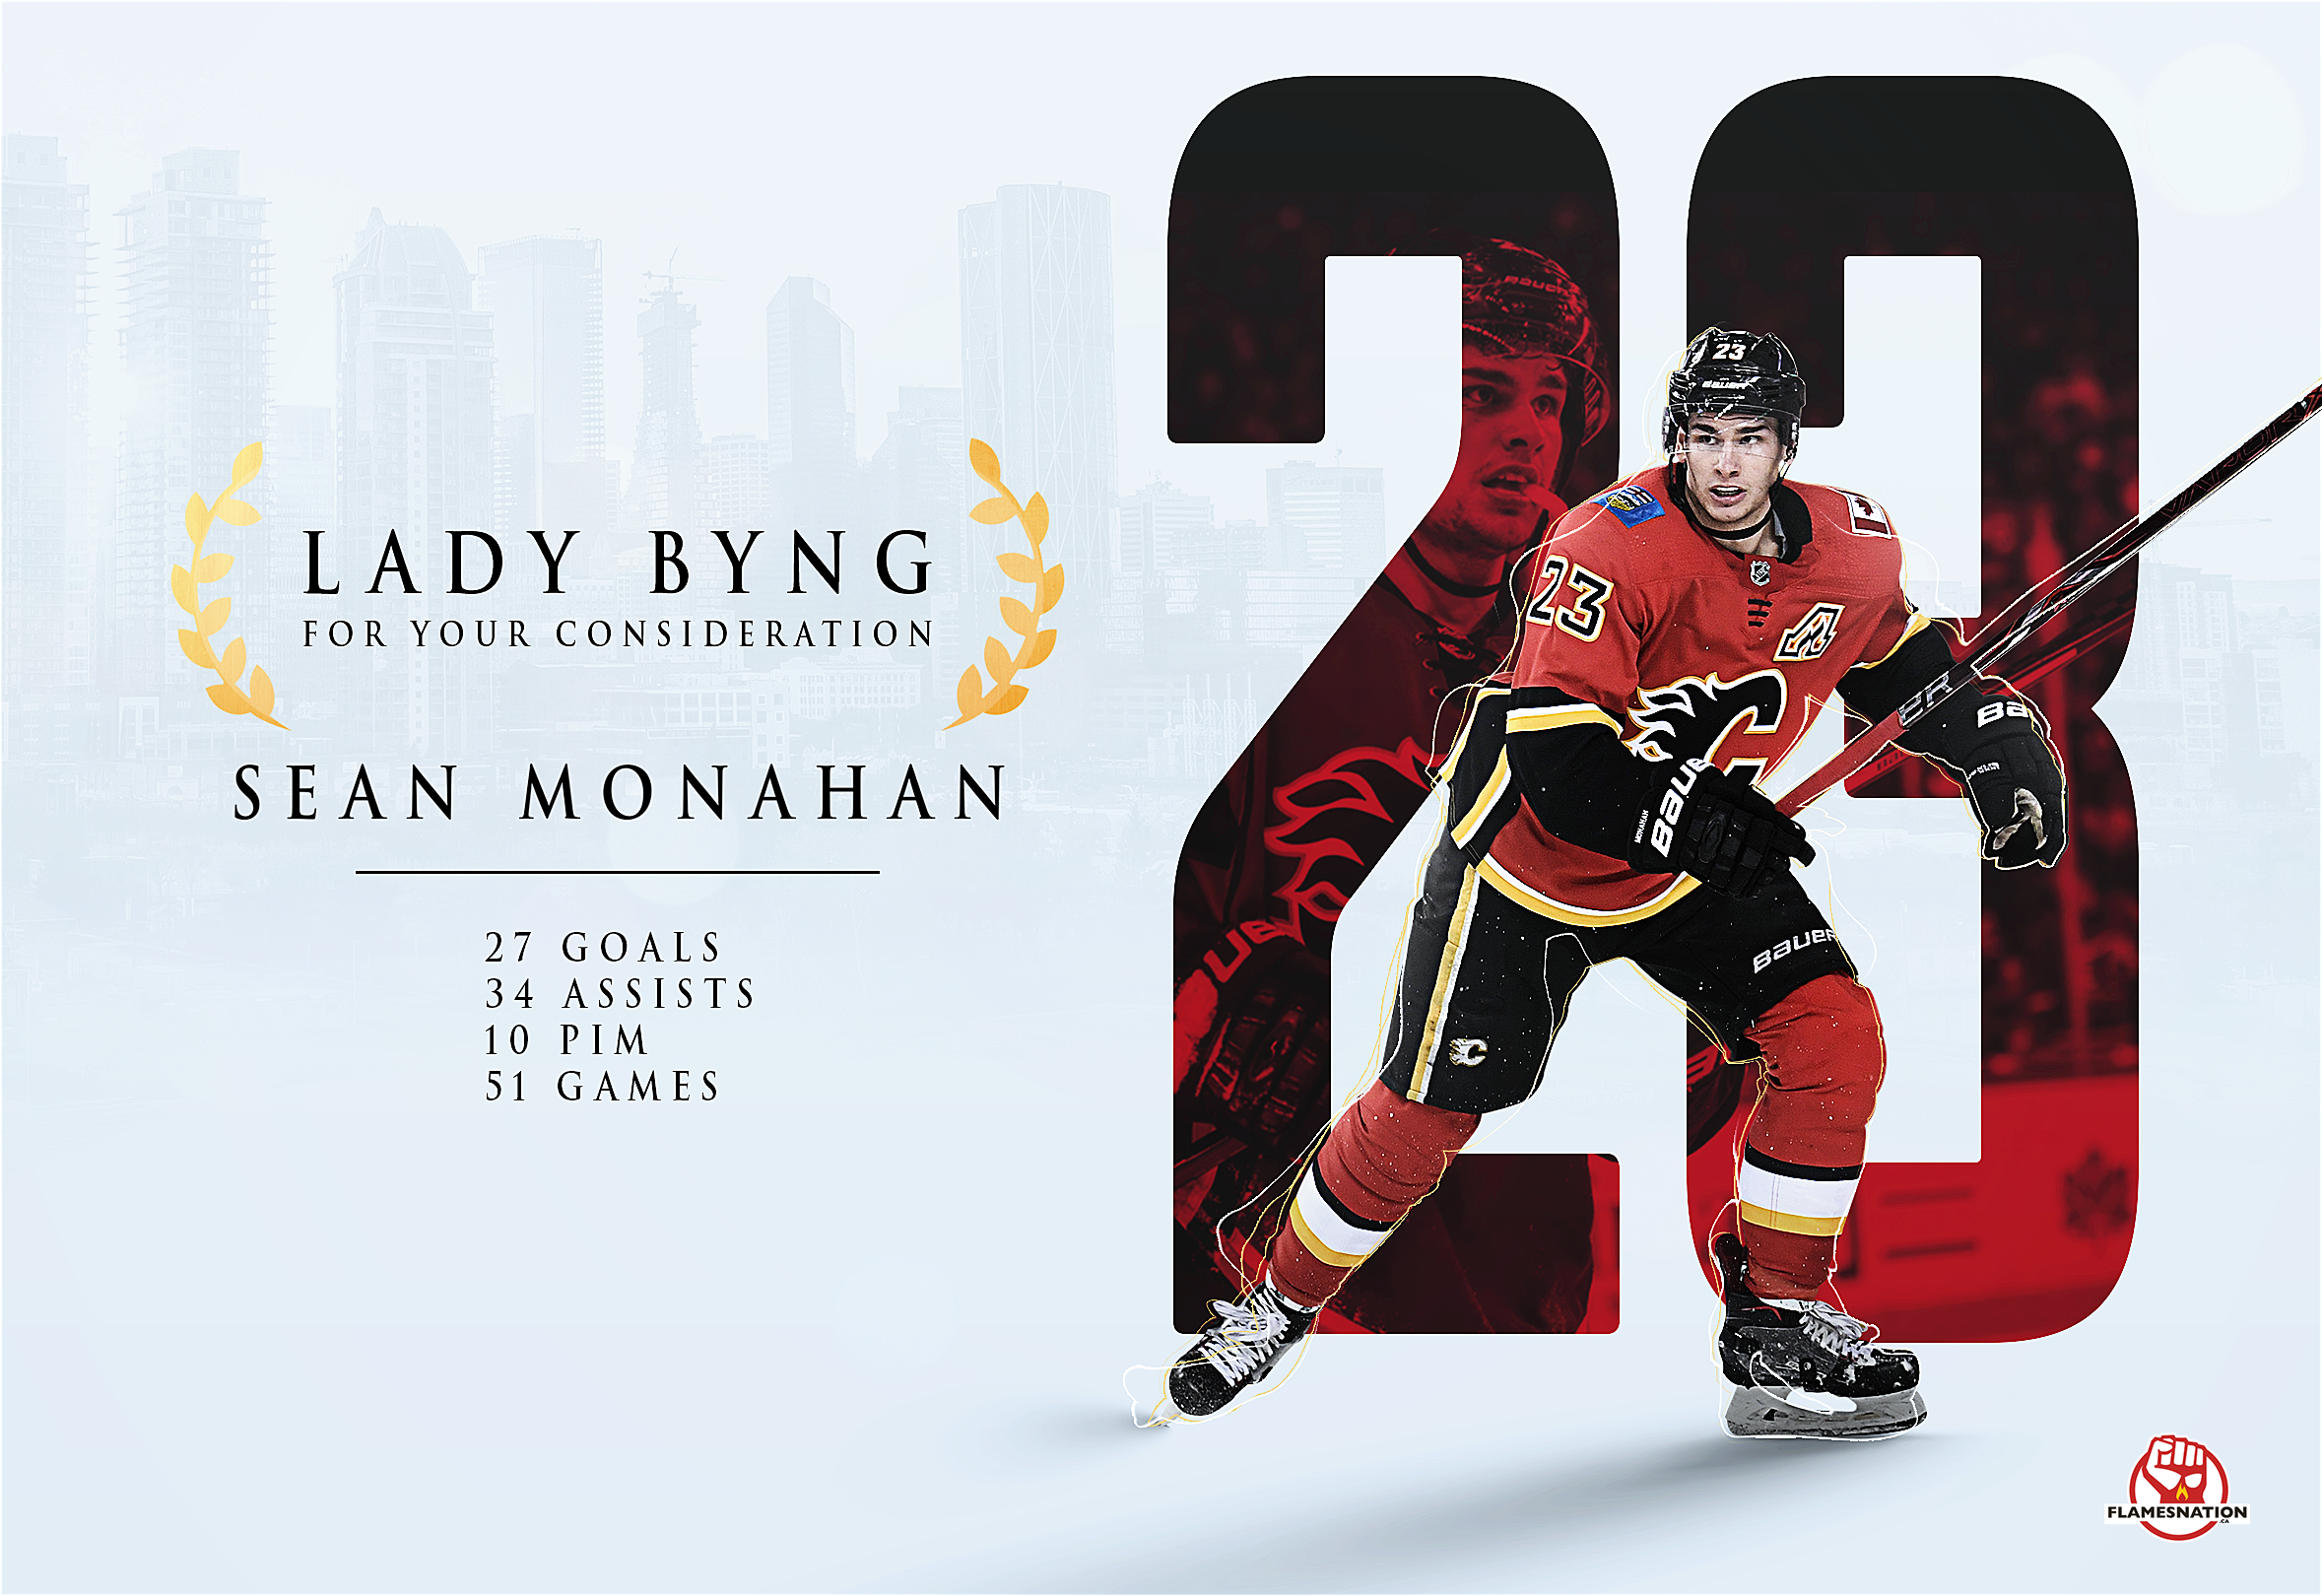 1dfe366e853 For Your Consideration  Sean Monahan for the Lady Byng Memorial Trophy